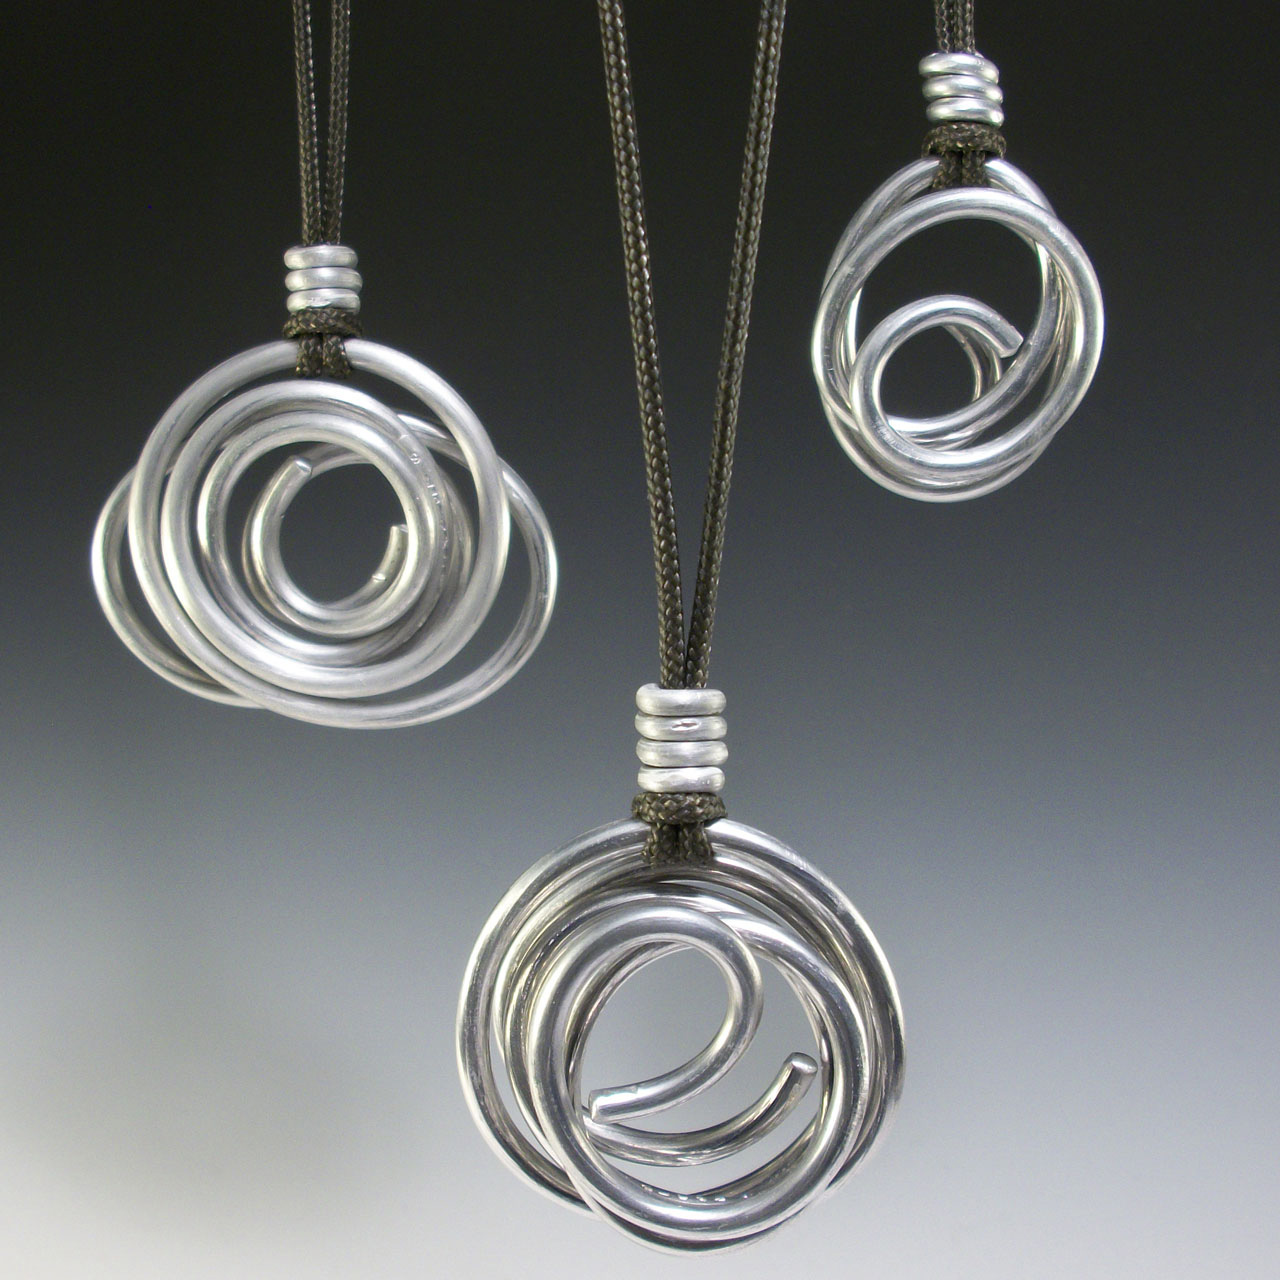 Re-circling Necklace by Mckenna Hallett